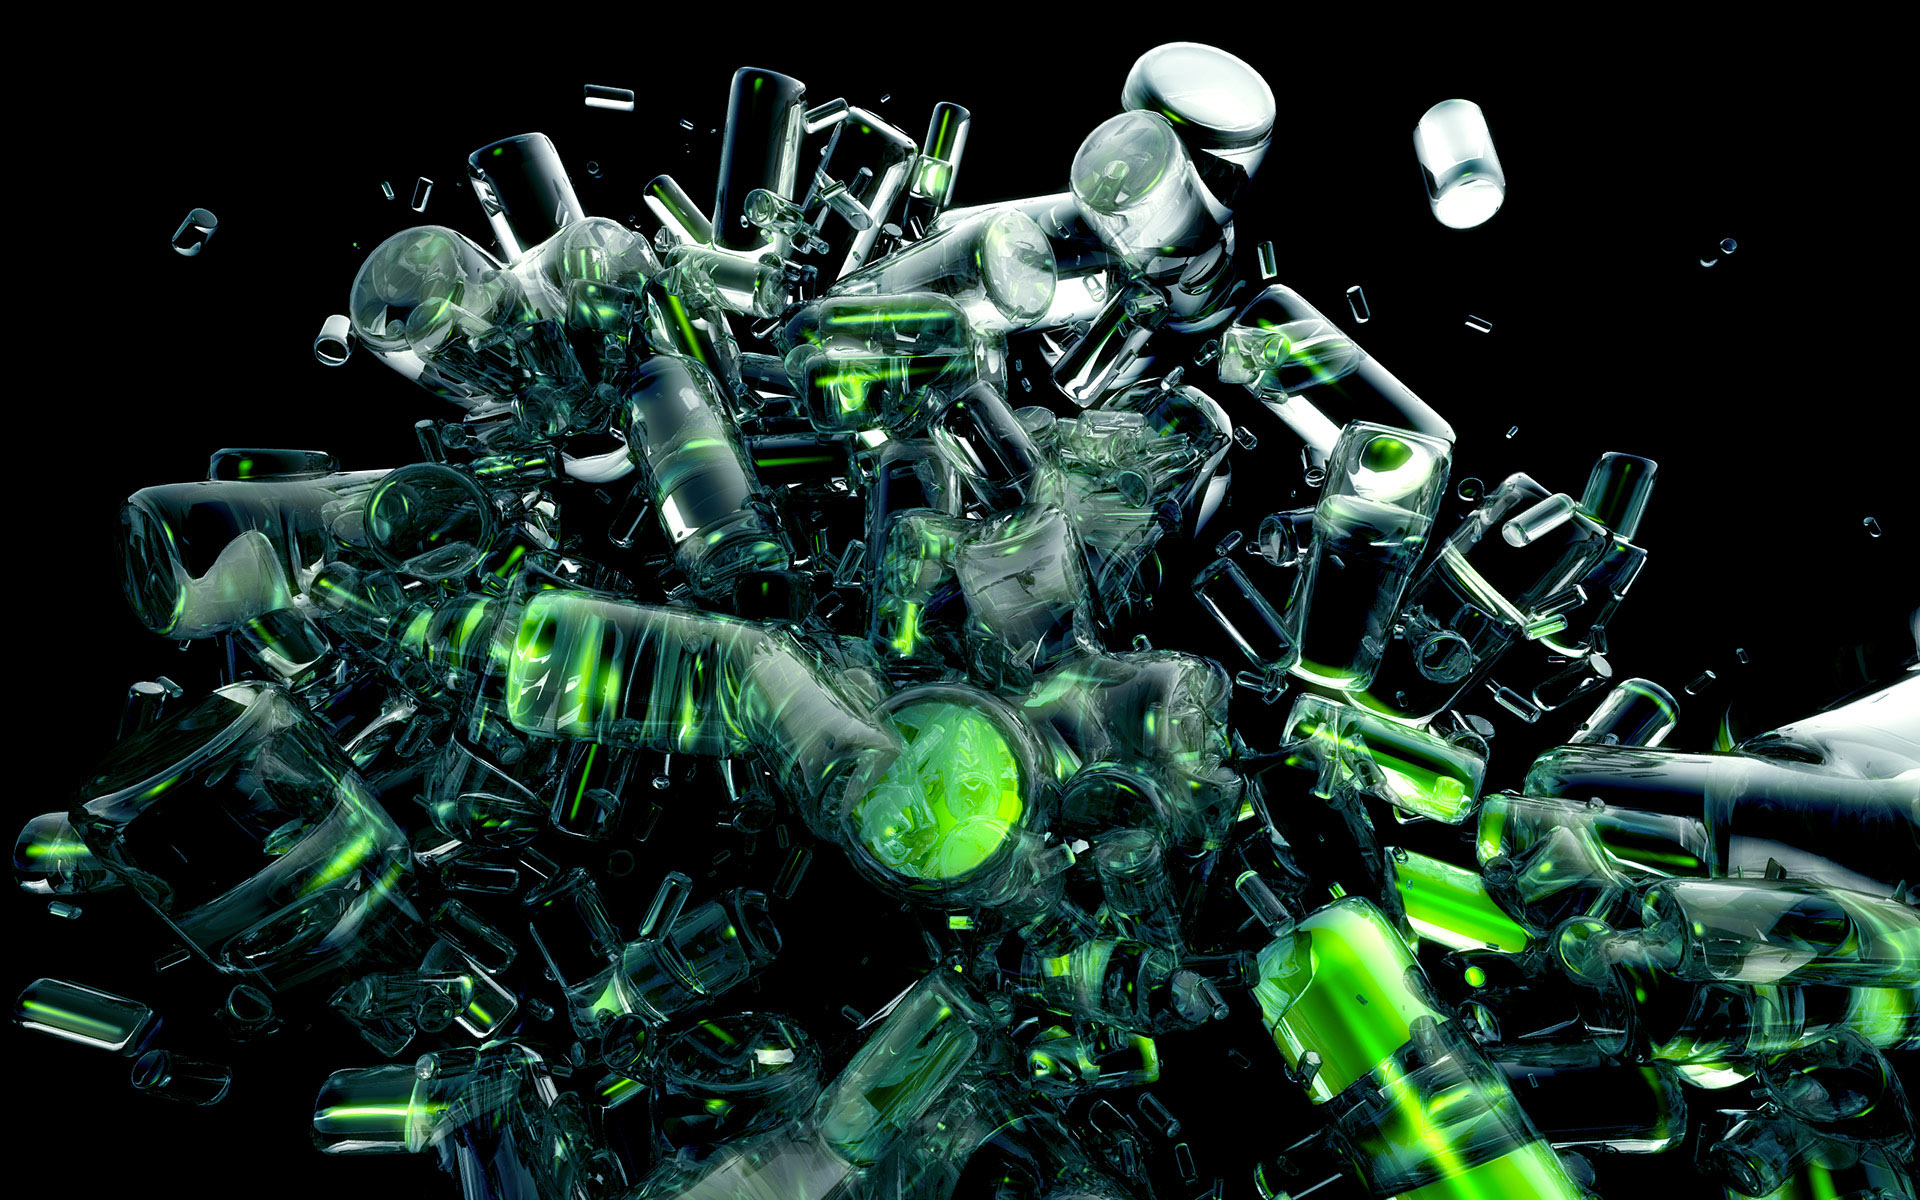 Bottles Crash 3D - Bottles Crash 3D